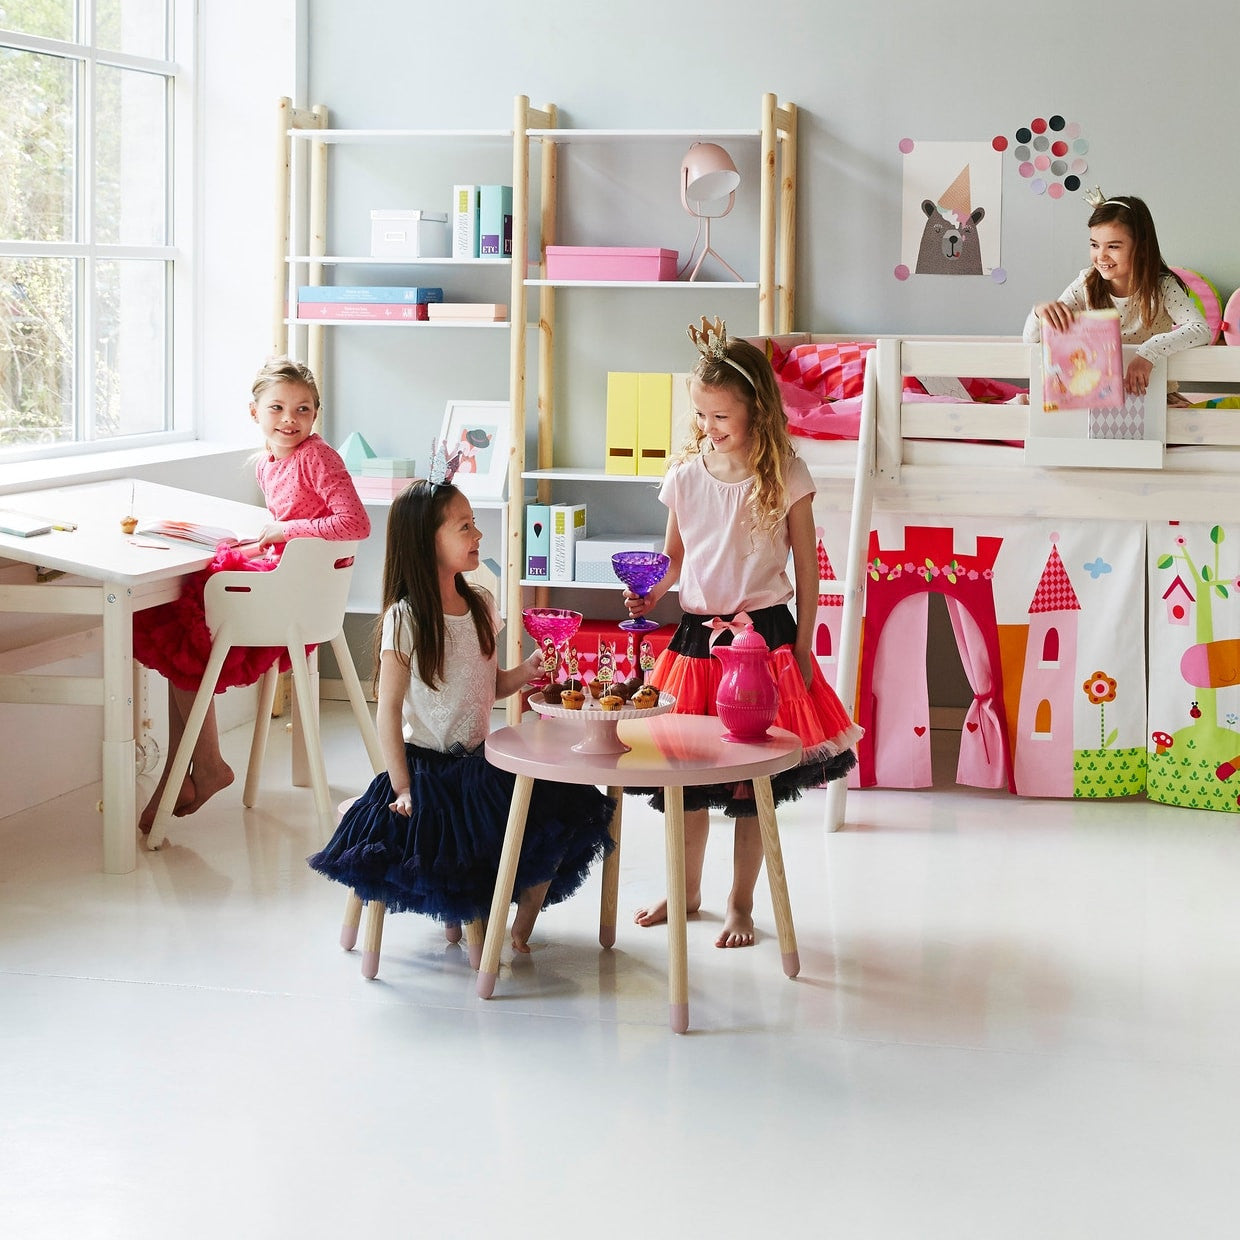 Flexa Kindertisch PLAY in rosa bei KidsWoodLove